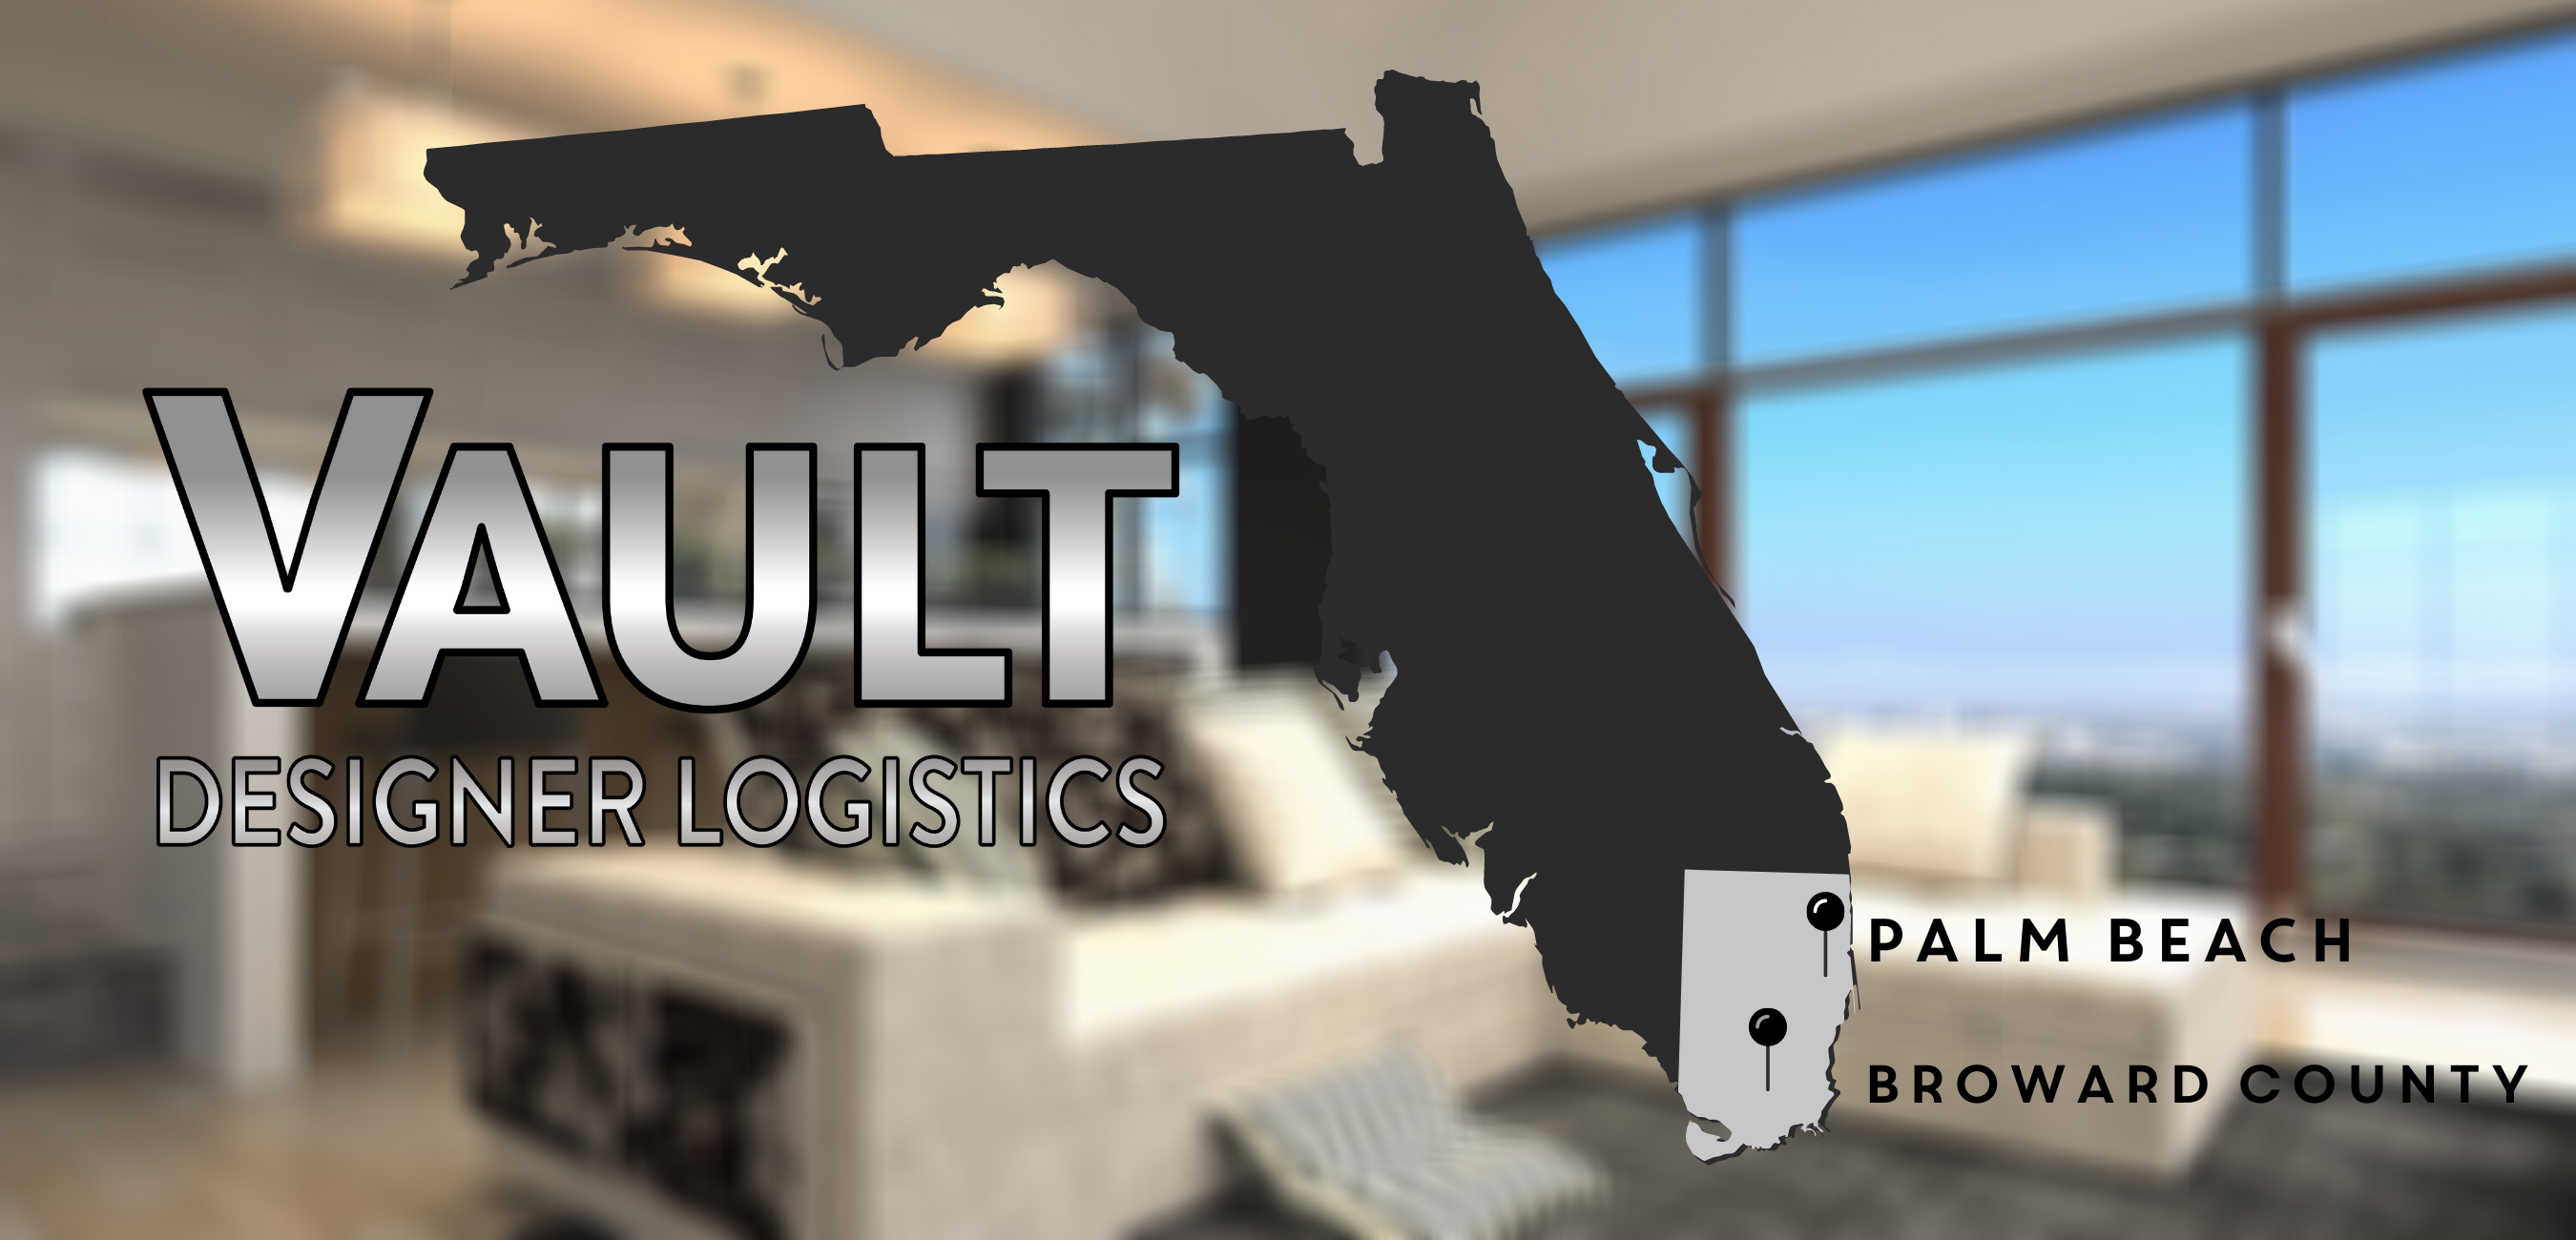 A map of Florida showing where Vault Designer Logistics is located in Broward and West Palm Beach Florida.